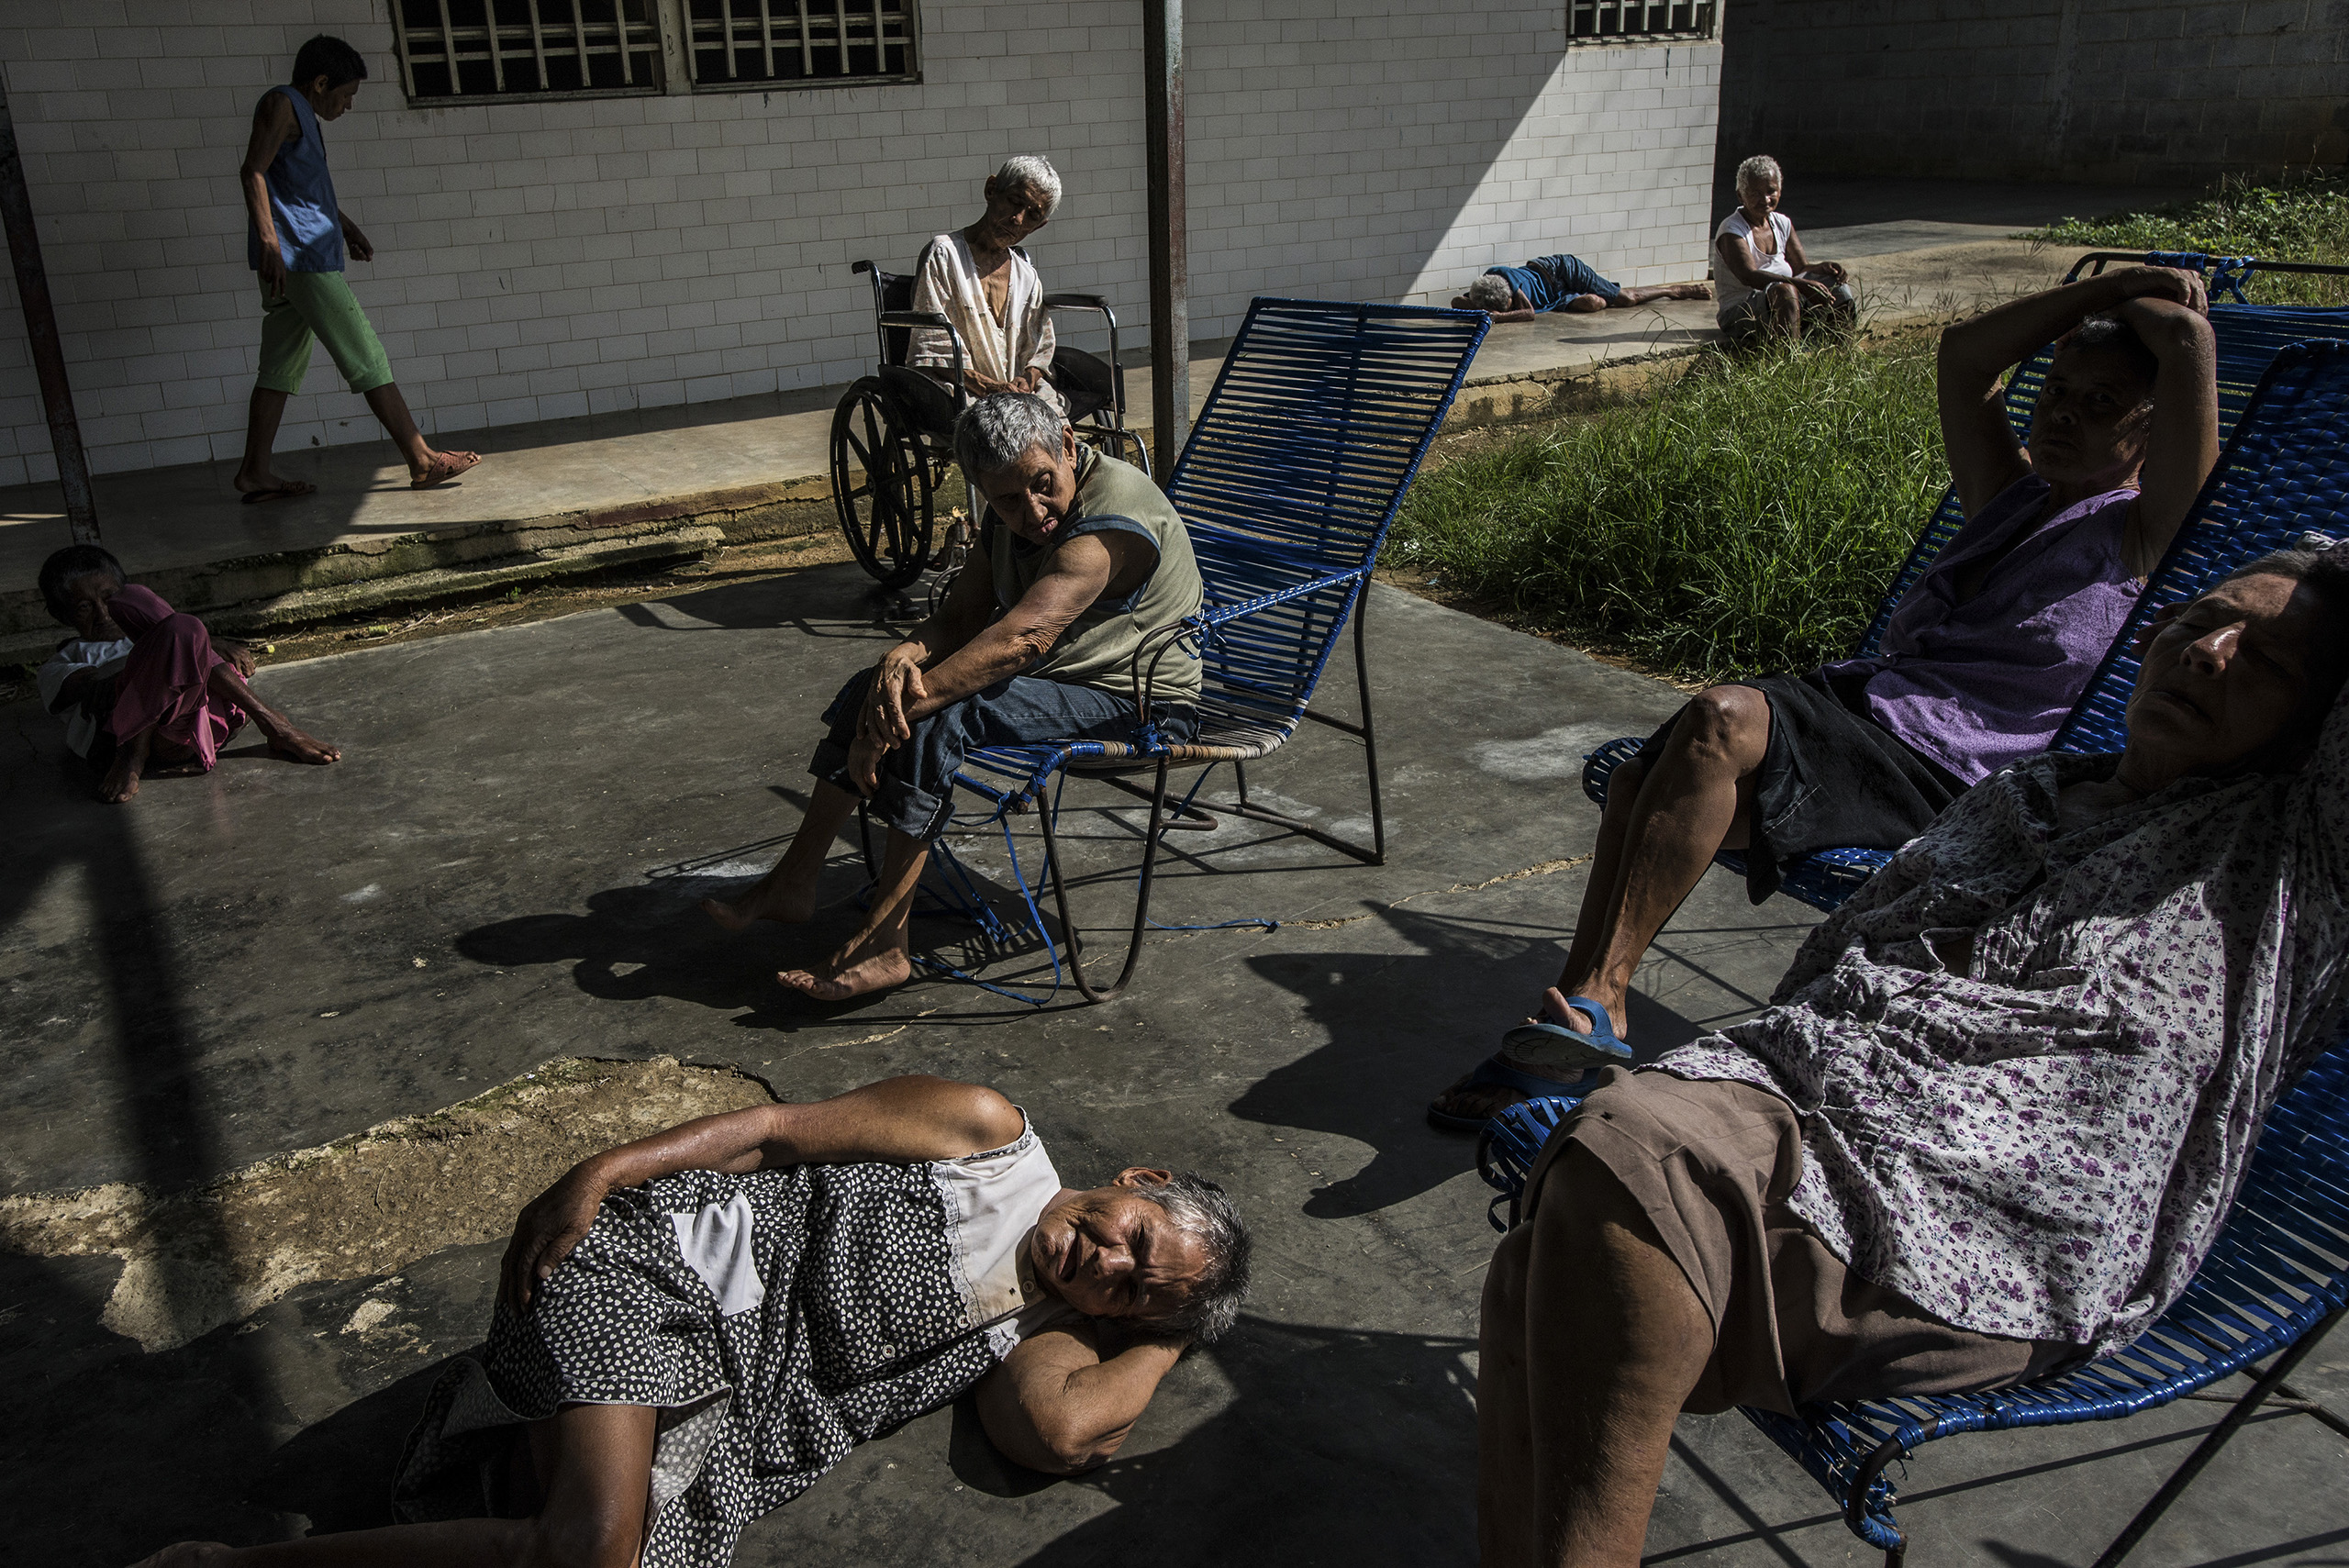 Patients in the patio of the women's ward of the state-run Pampero Psychiatric Hospital in Barquisimeto, Venezuela, on July 29, 2016.